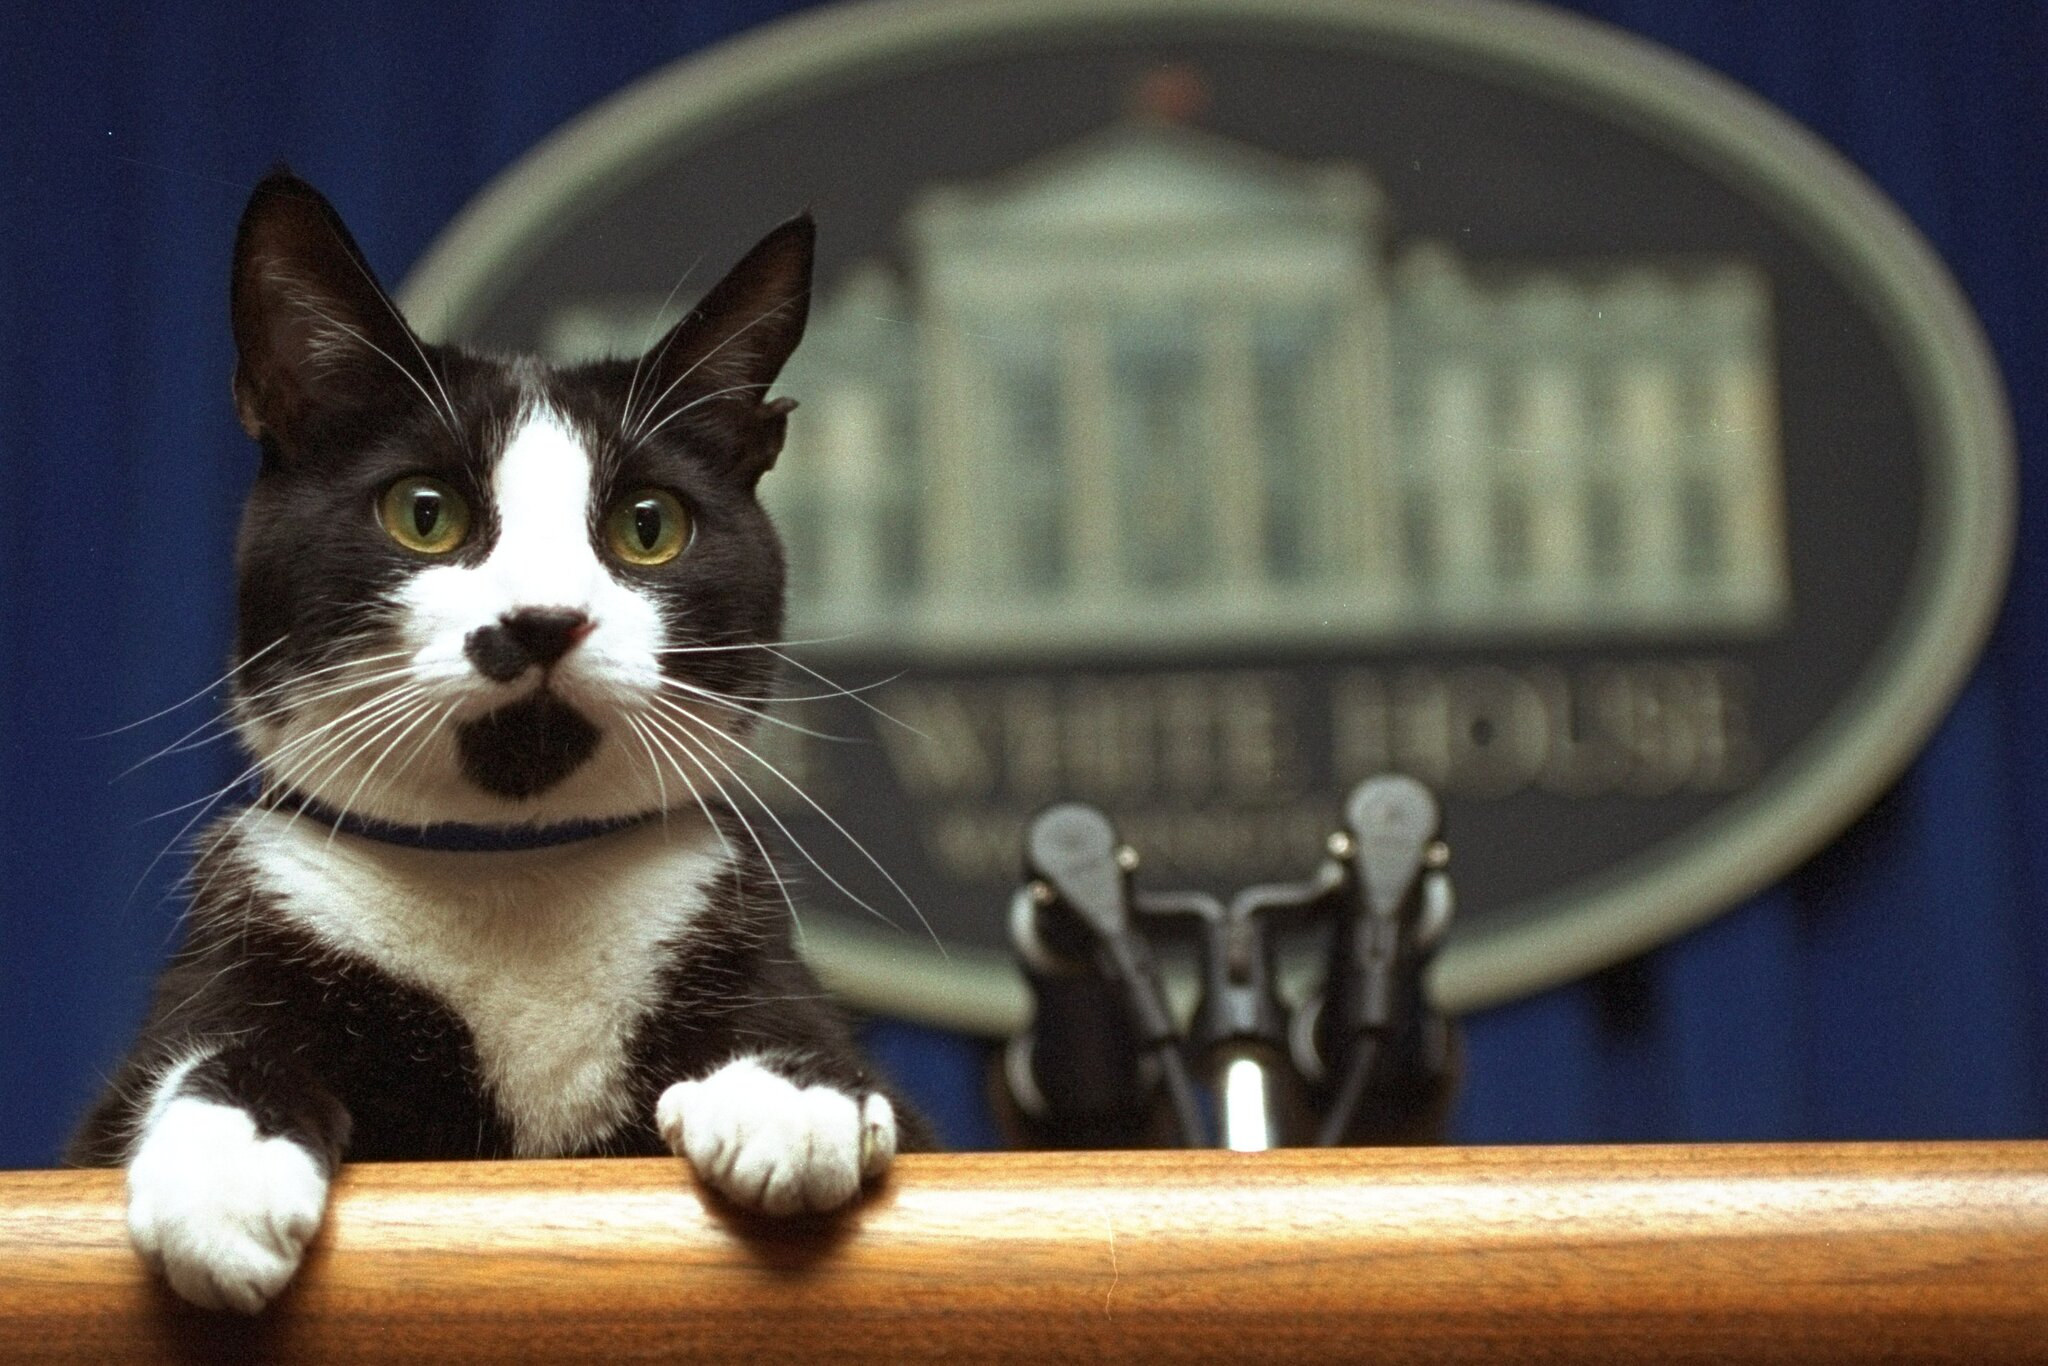 Once again, a cat is set to join the ranks of presidential pets